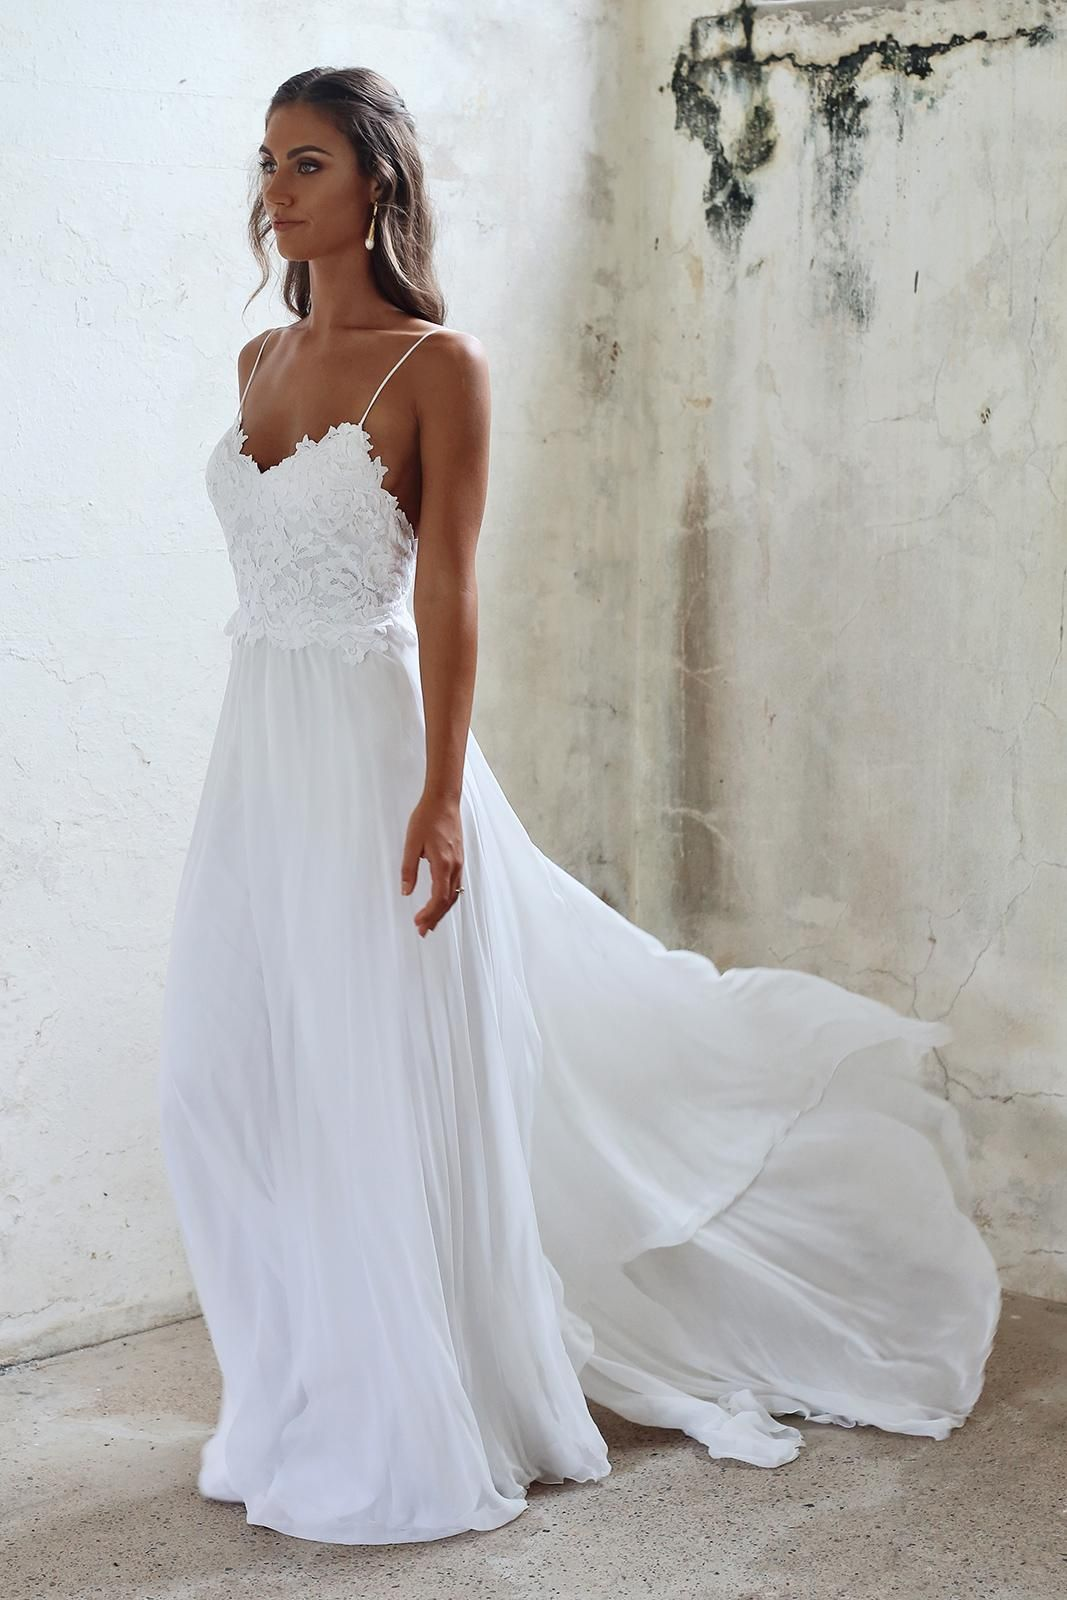 Tara wedding wedding dress and romantic for Good wedding dresses for short brides